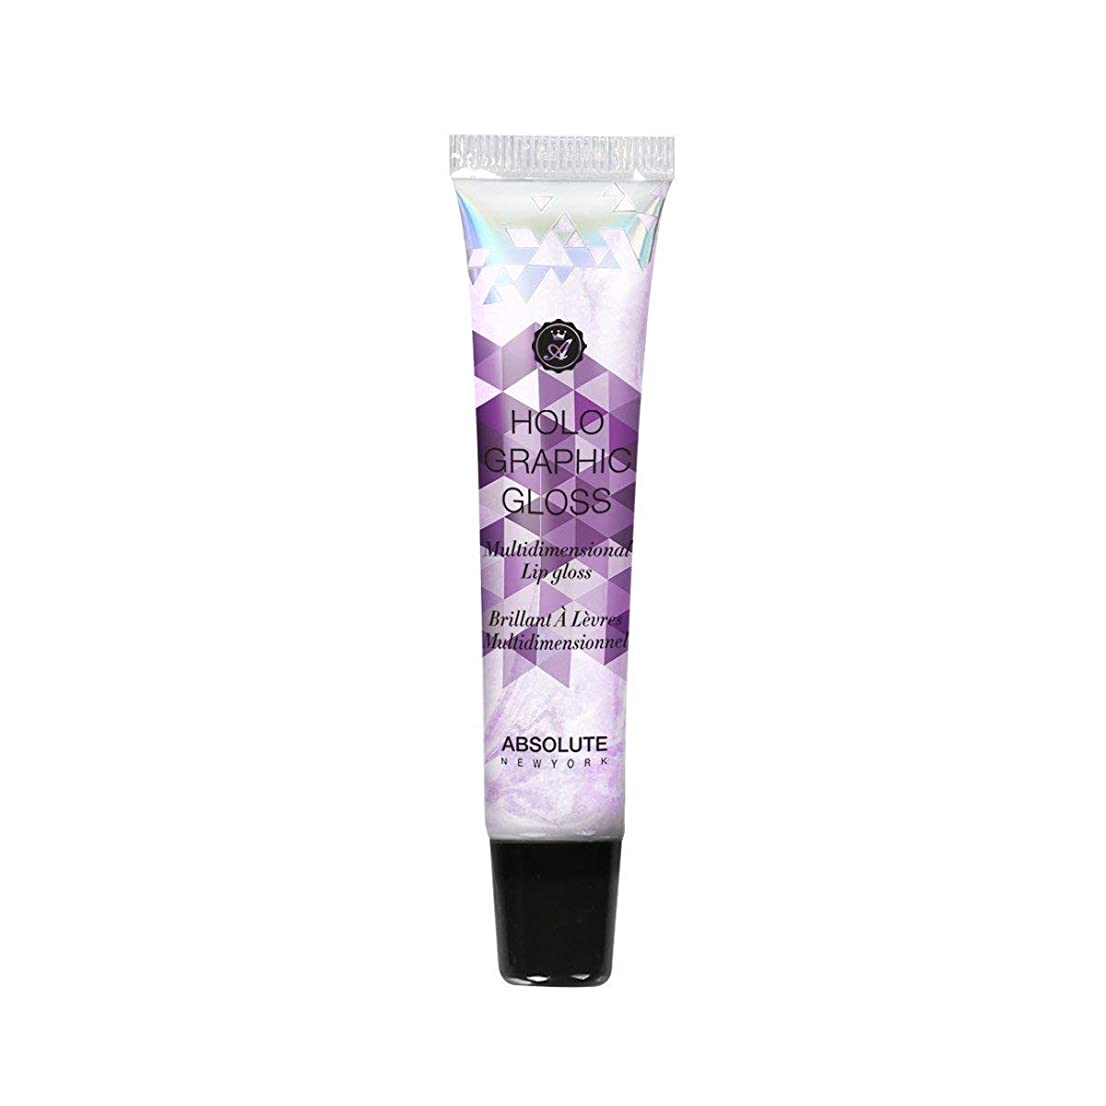 ABSOLUTE Holographic Gloss - Glacier (並行輸入品)